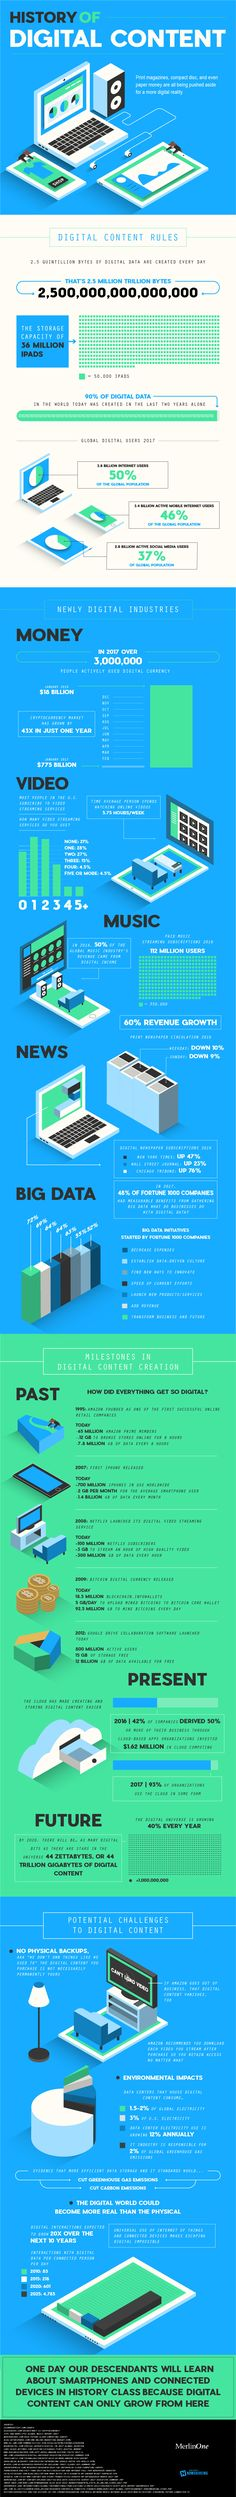 Leveraging Digital Content Can Help Your Business Innovate [Infographic]